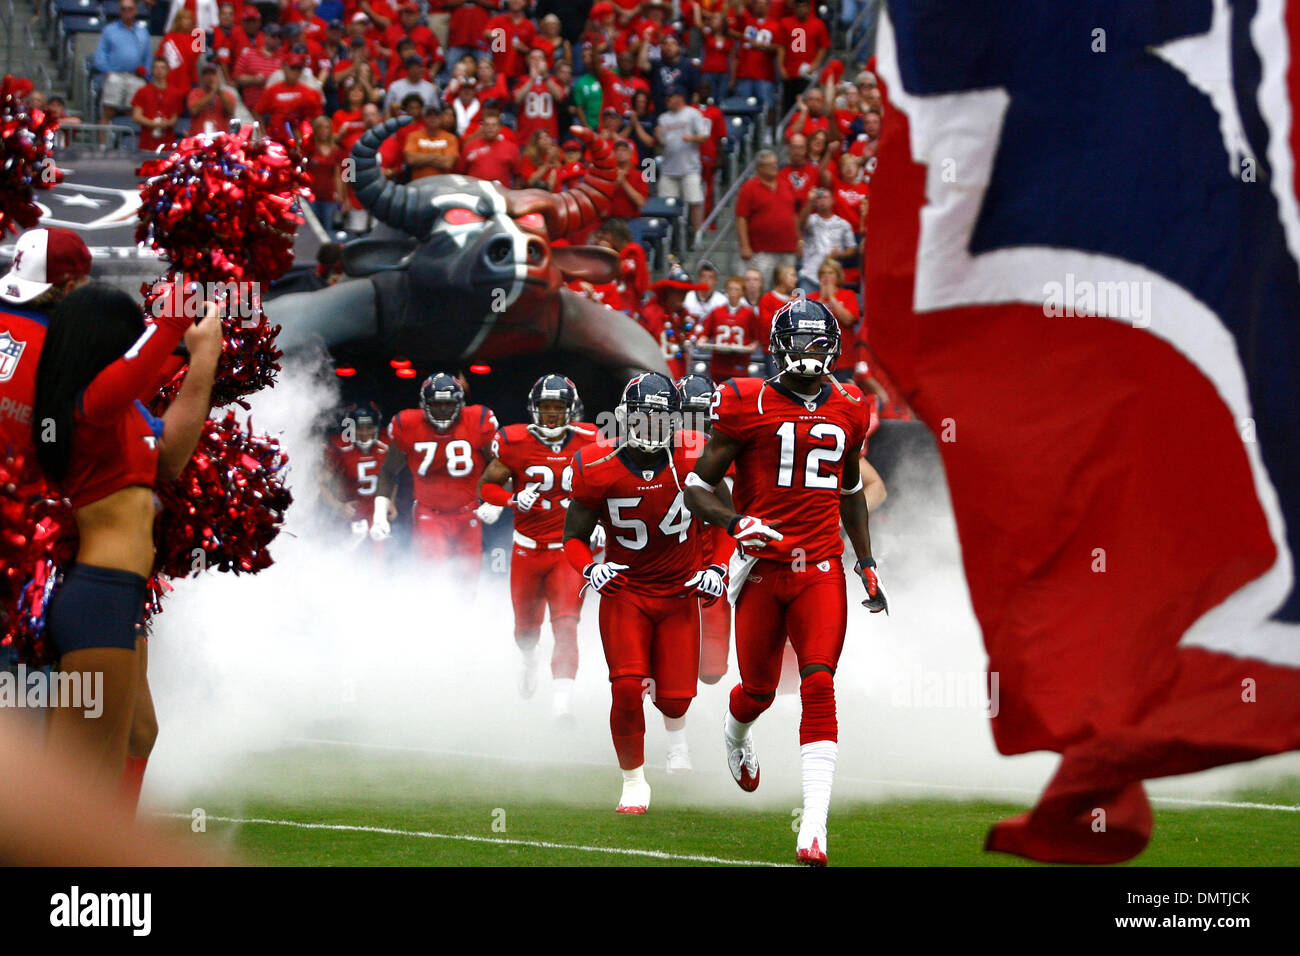 new concept d2b8b bcf72 The Houston Texans enter the field amid smoke and a red ...